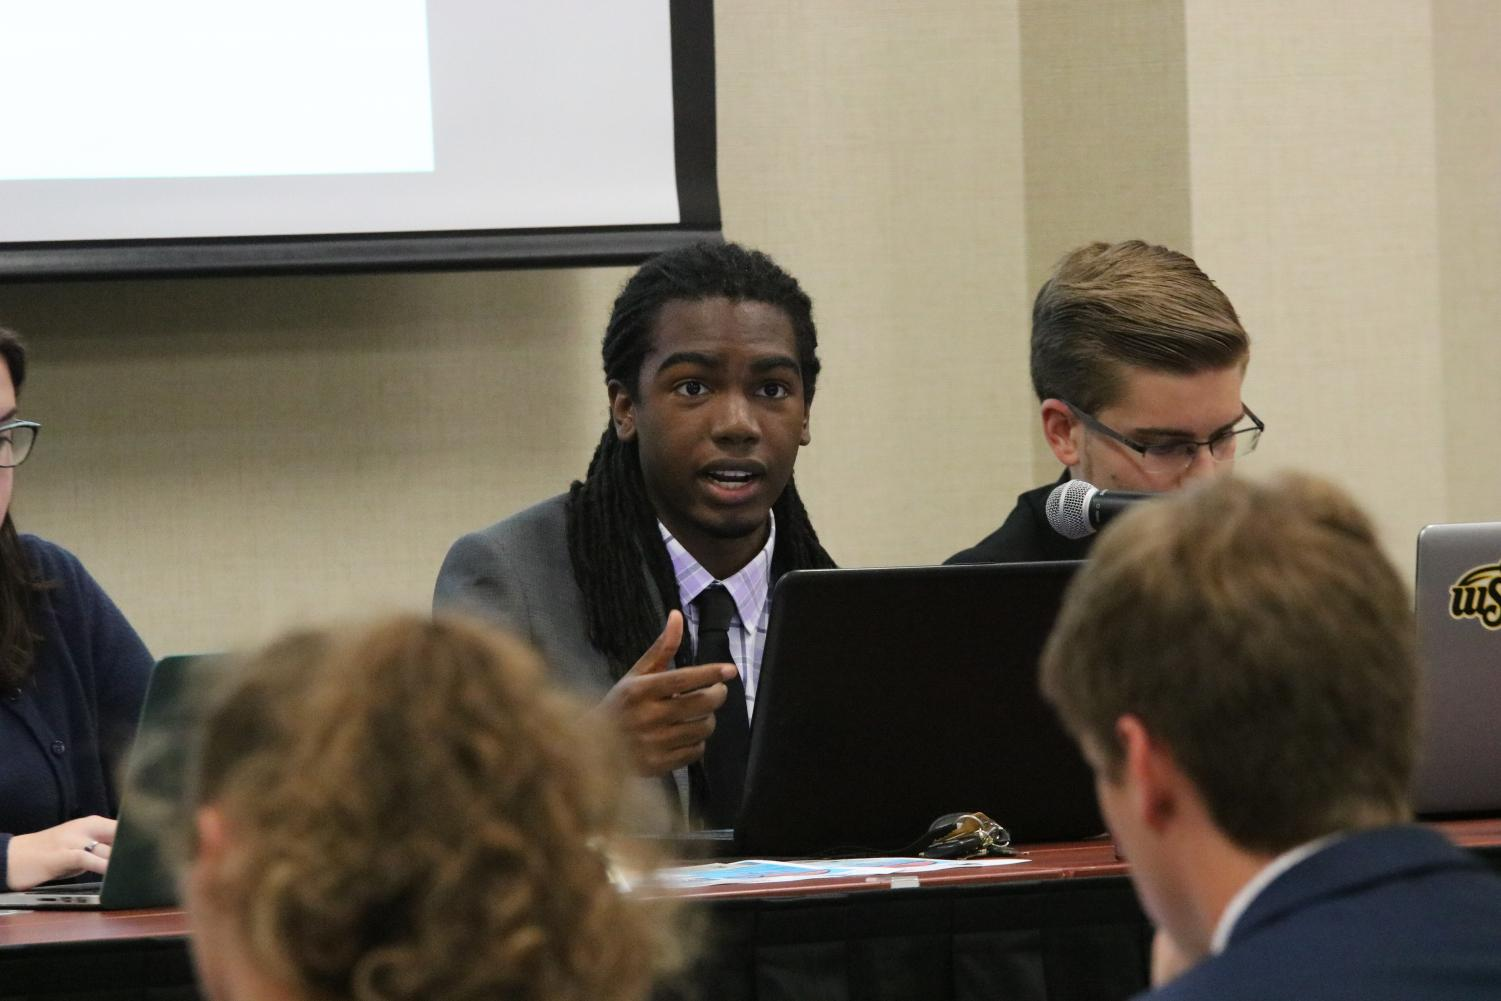 Student Body President Kenon Brinkley speaks during Wednesday's SGA meeting.